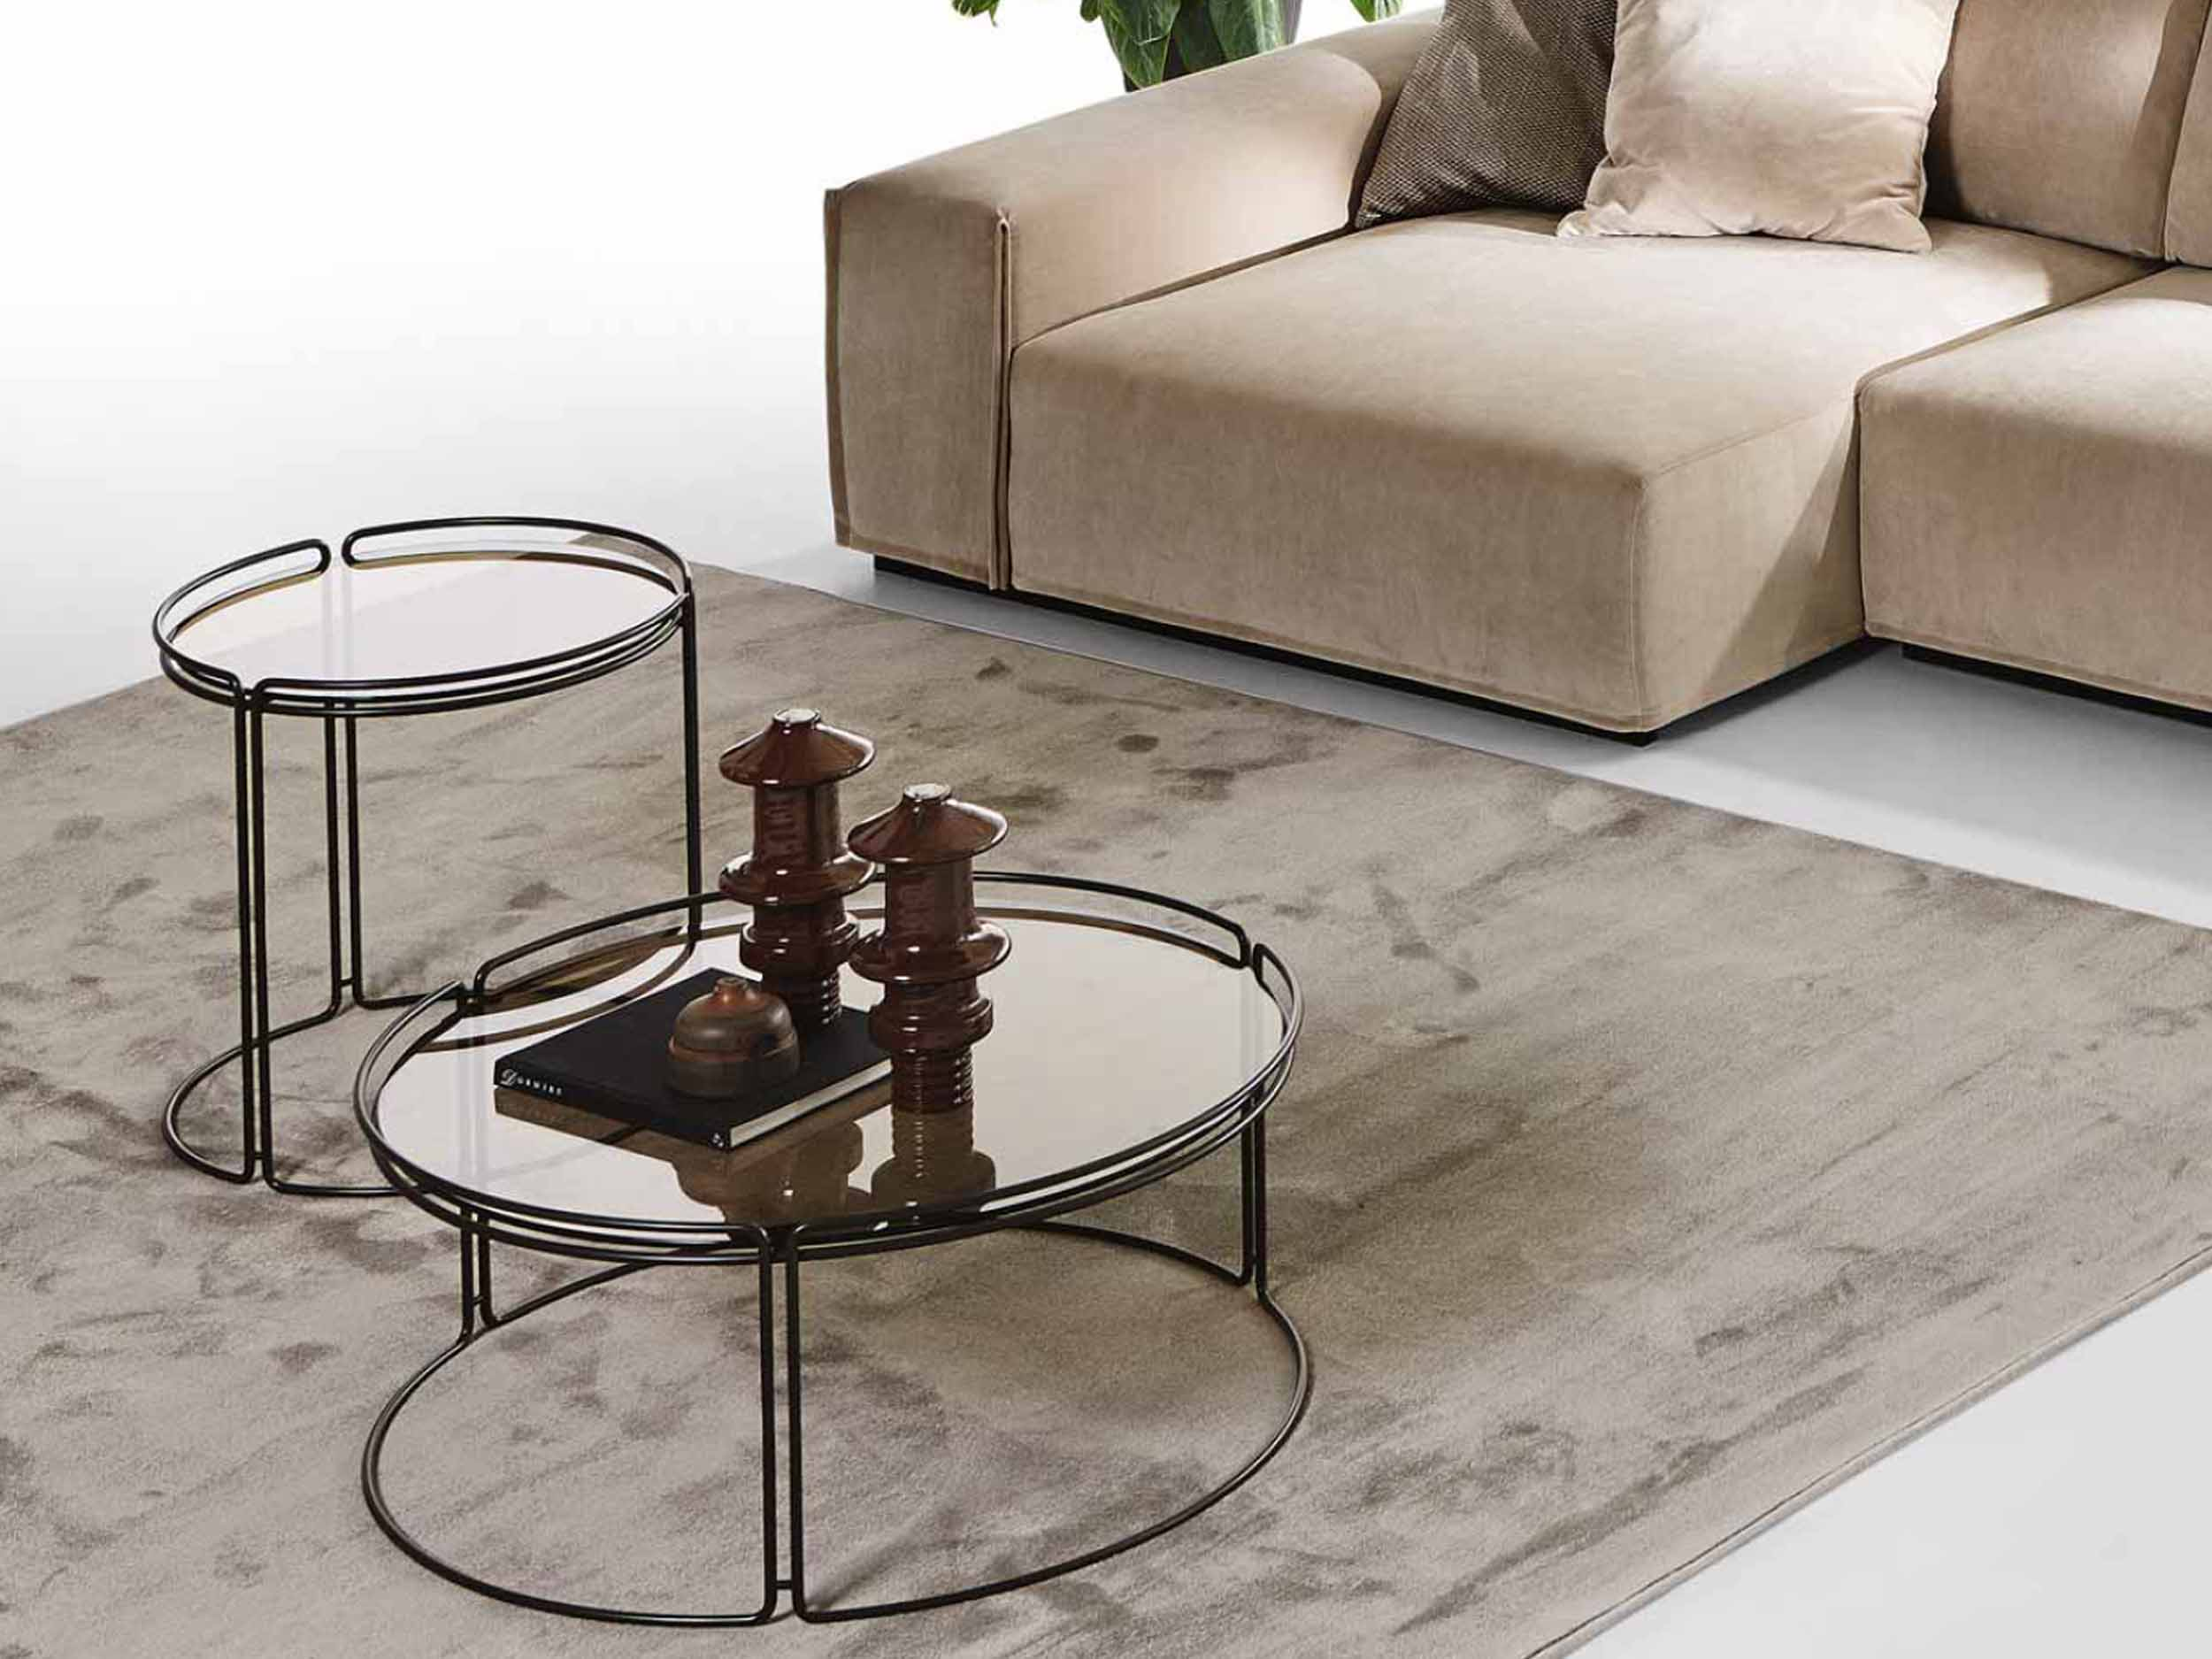 Monolith Central/Side Table